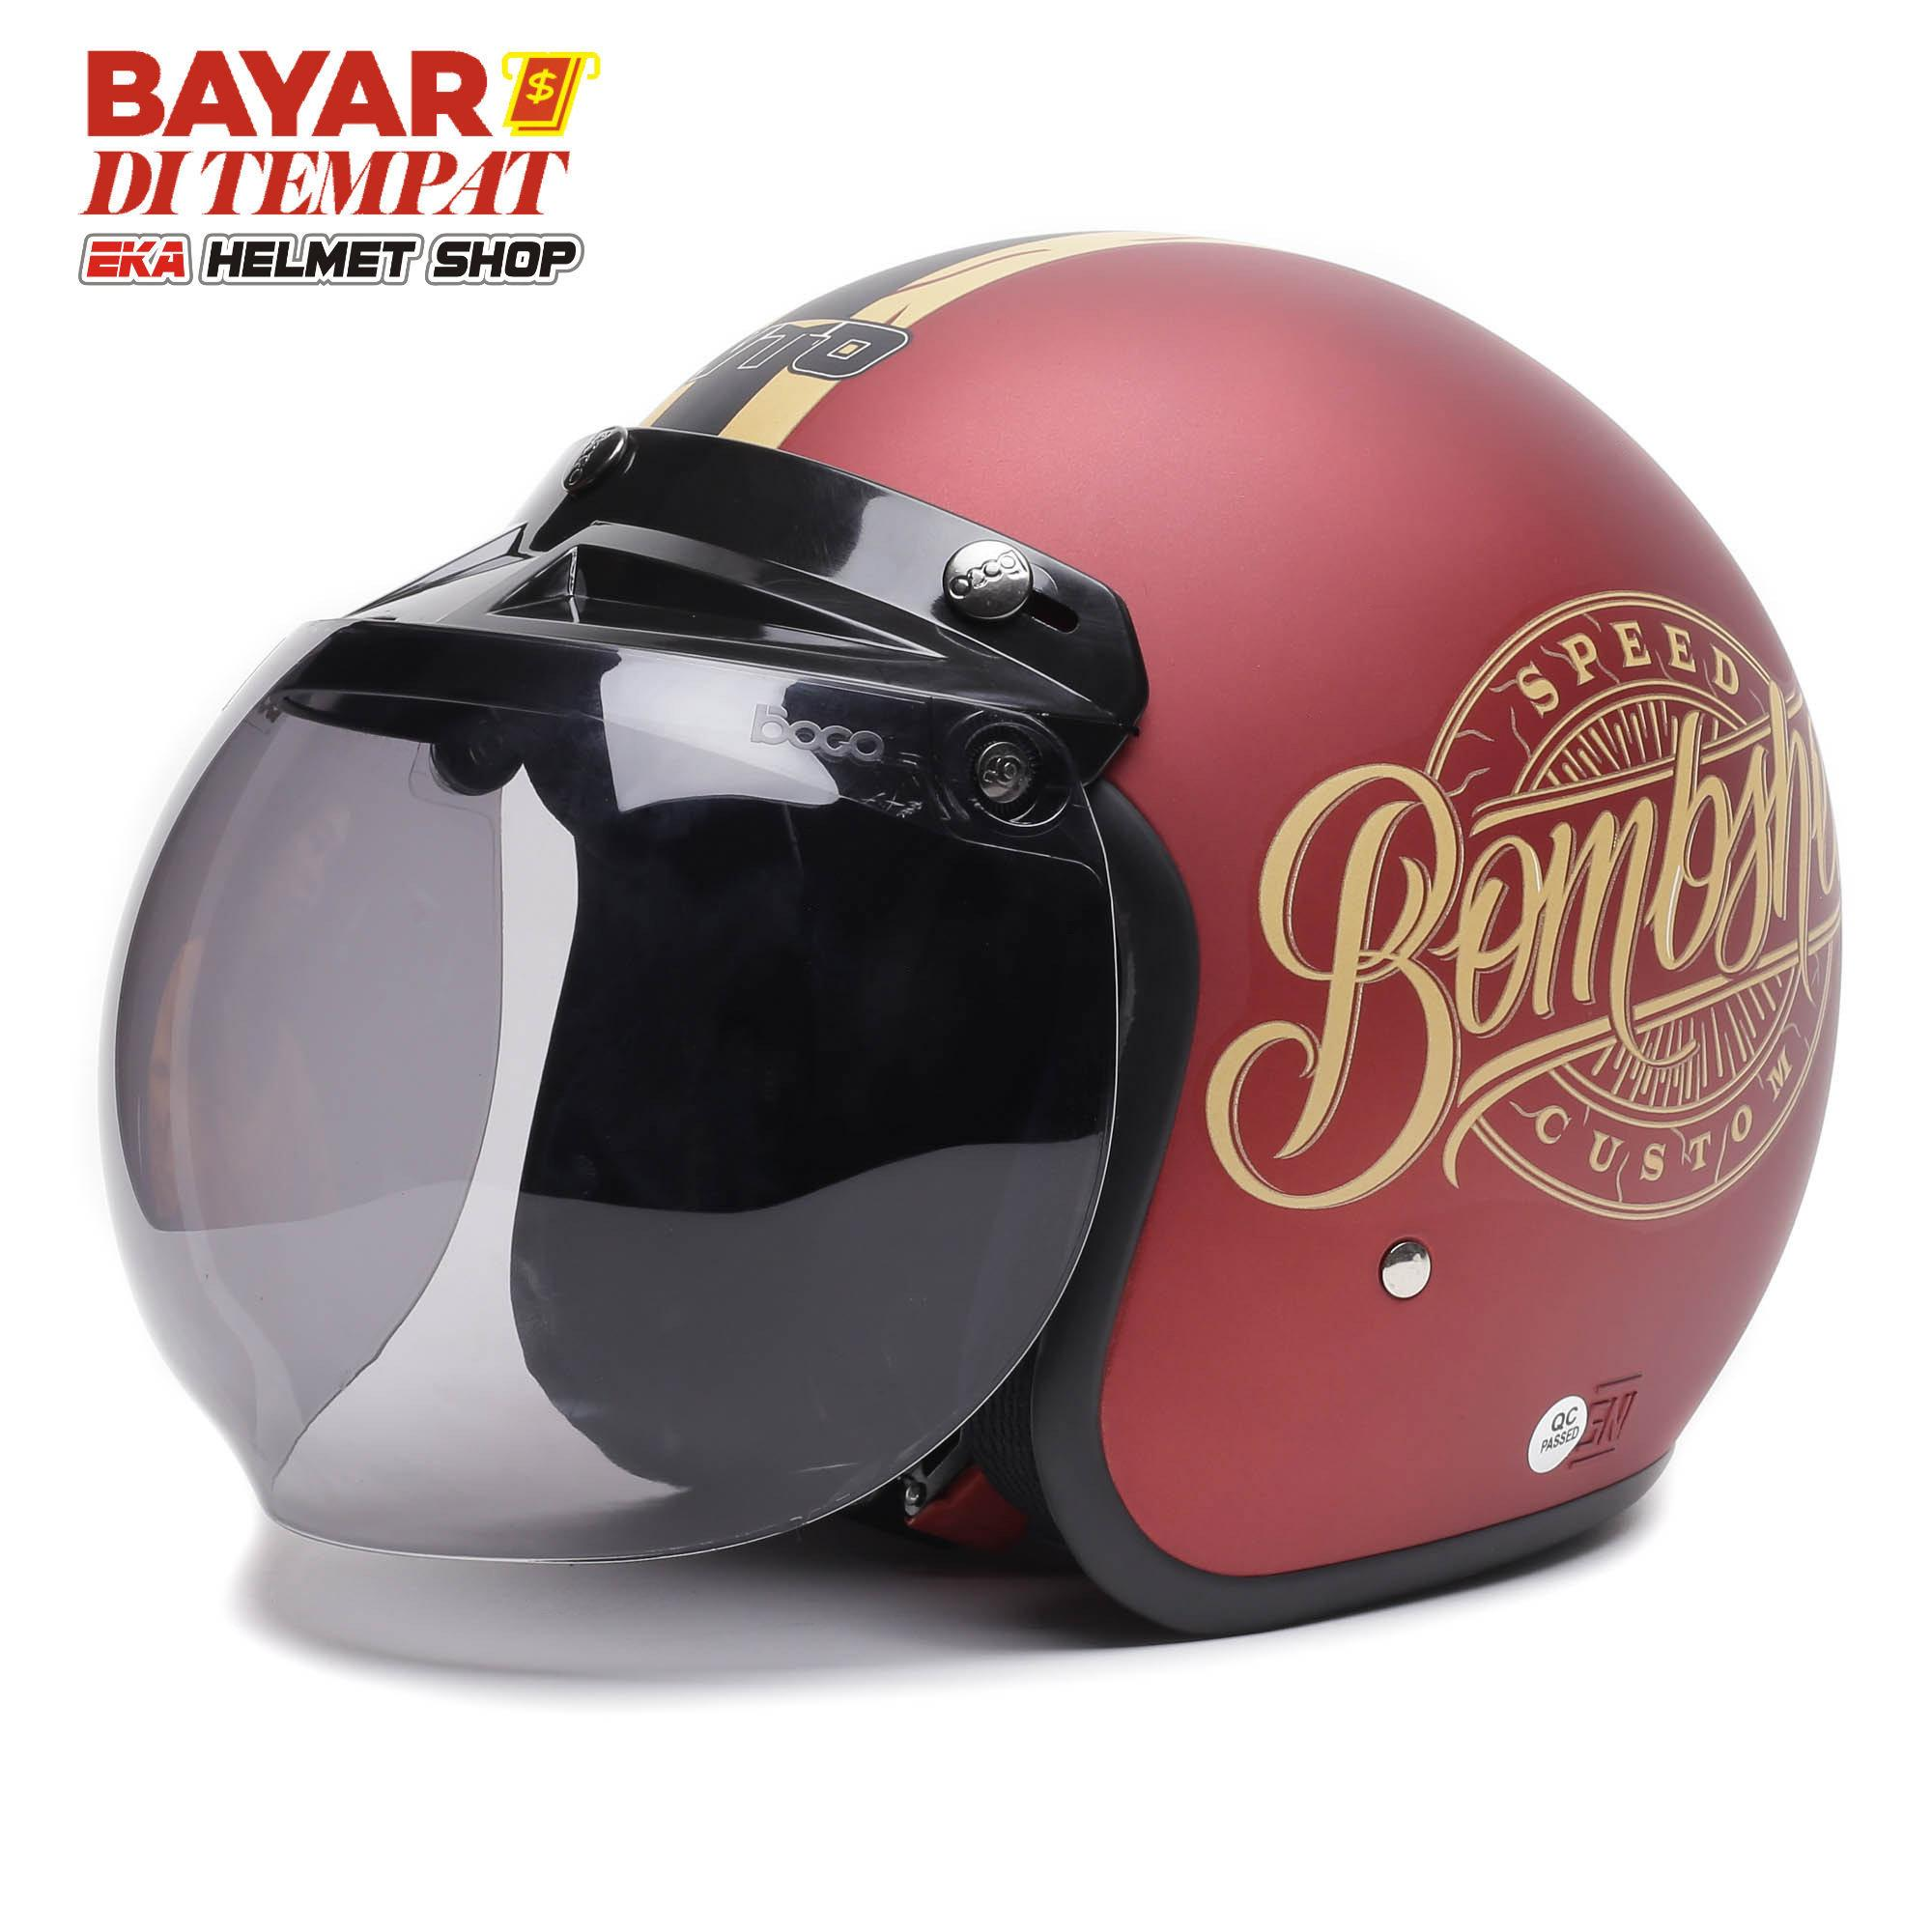 Wto Helm Bogo Retro - Bombshell - Candy Red Doff By Eka Helmet Shop.